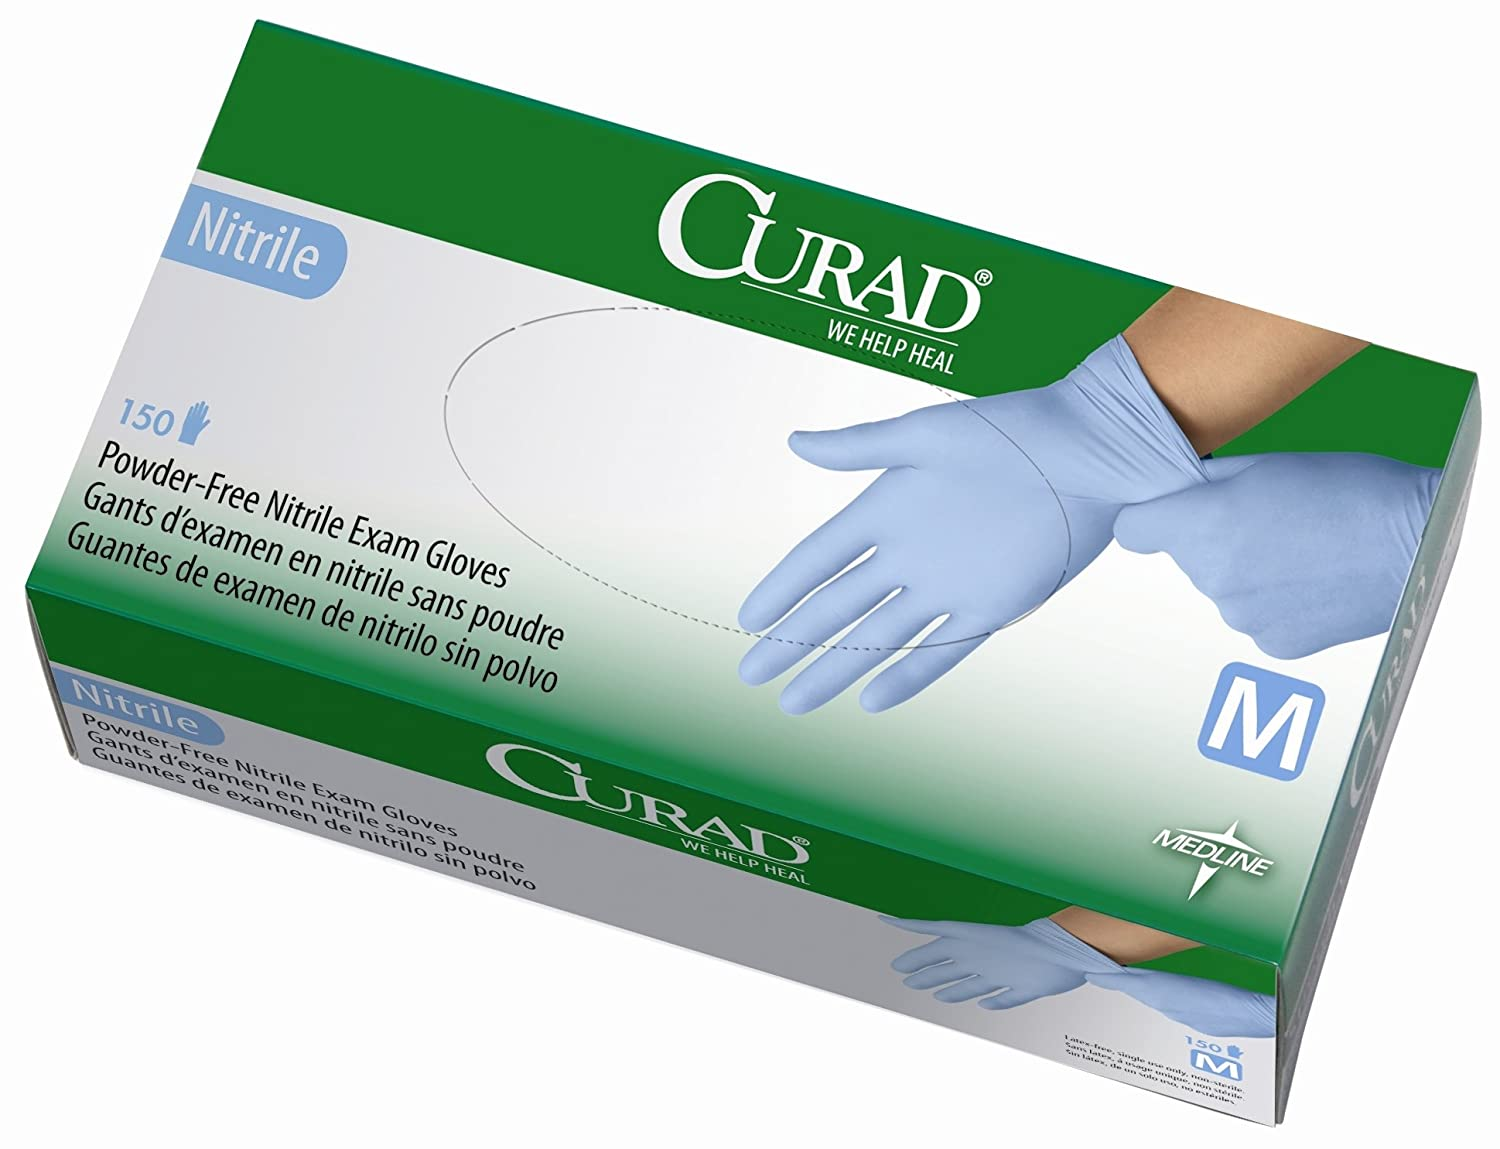 Curad Powder-Free Nitrile, Small, 150 Count CUR9314